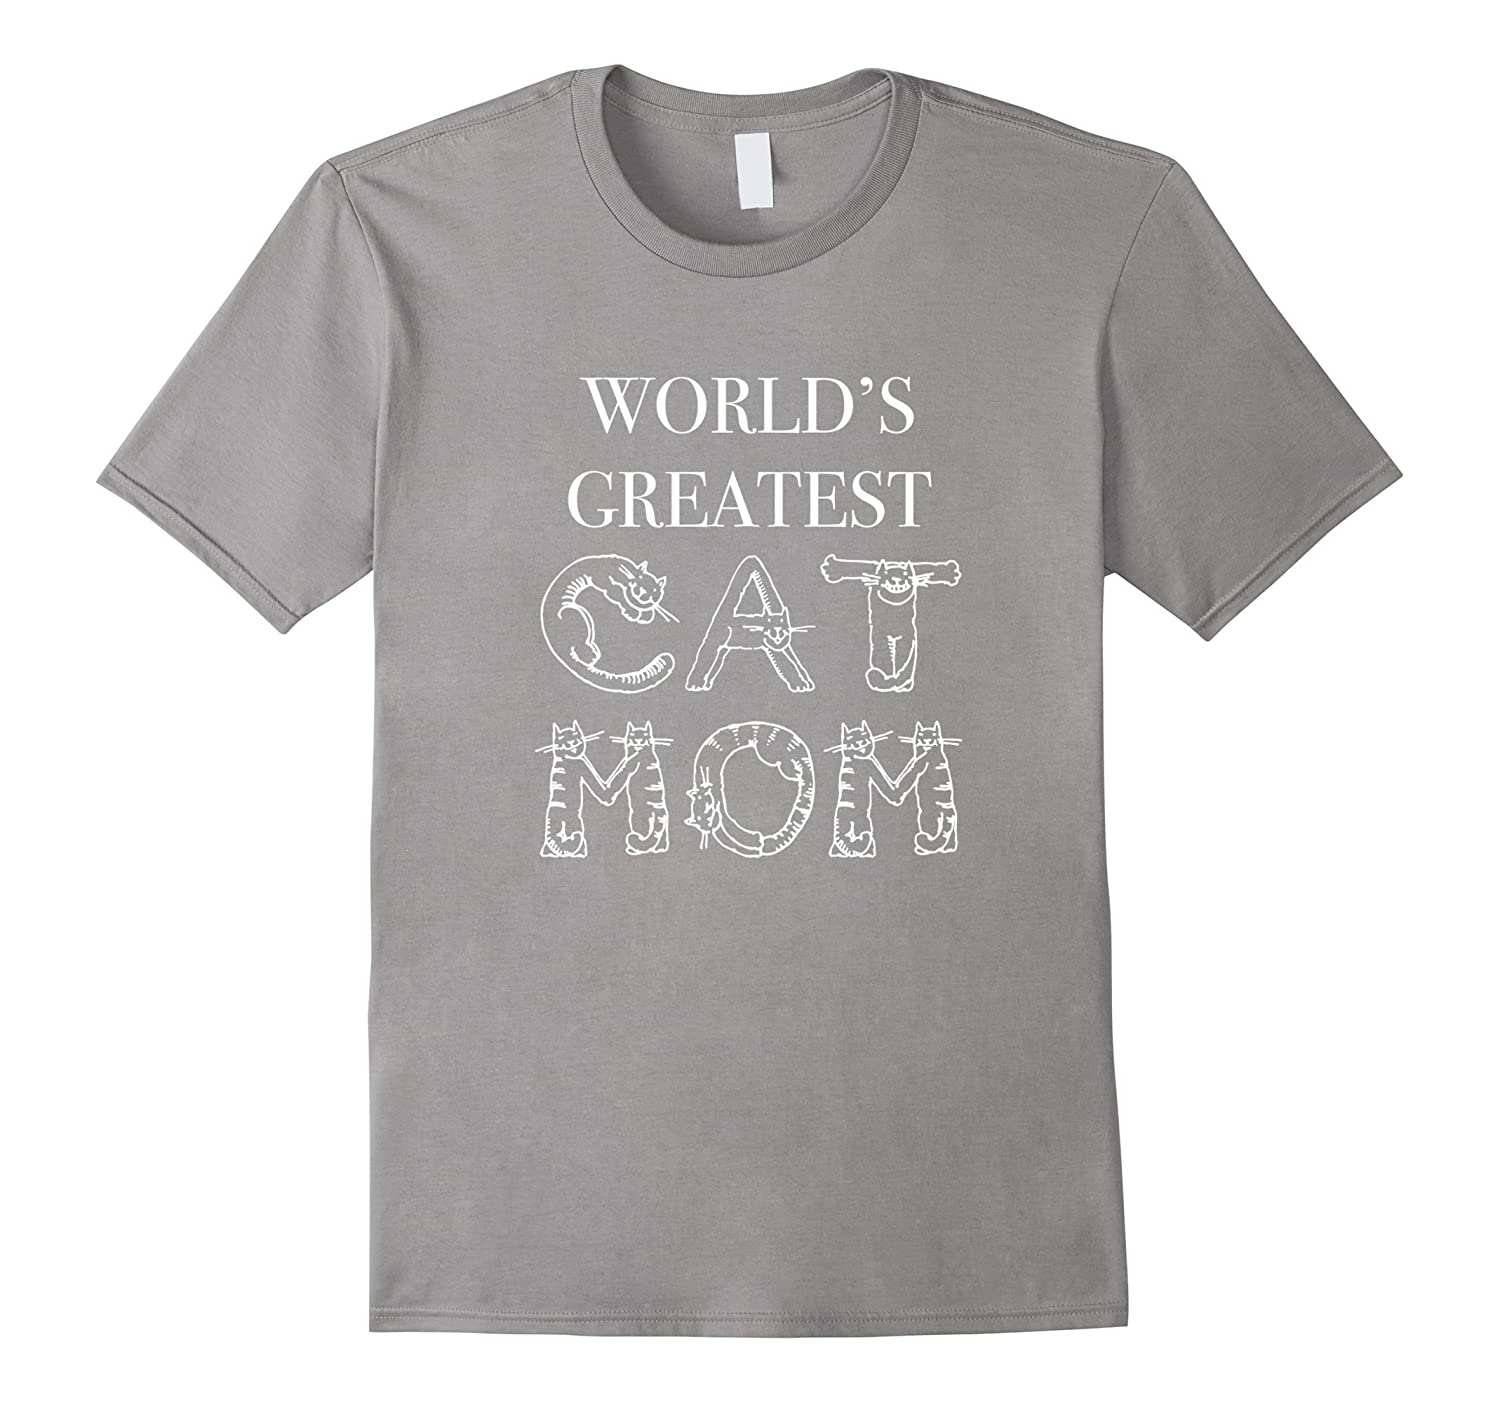 World's Greatest Cat Mom T-shirt Women Best Gifts for Women-CL